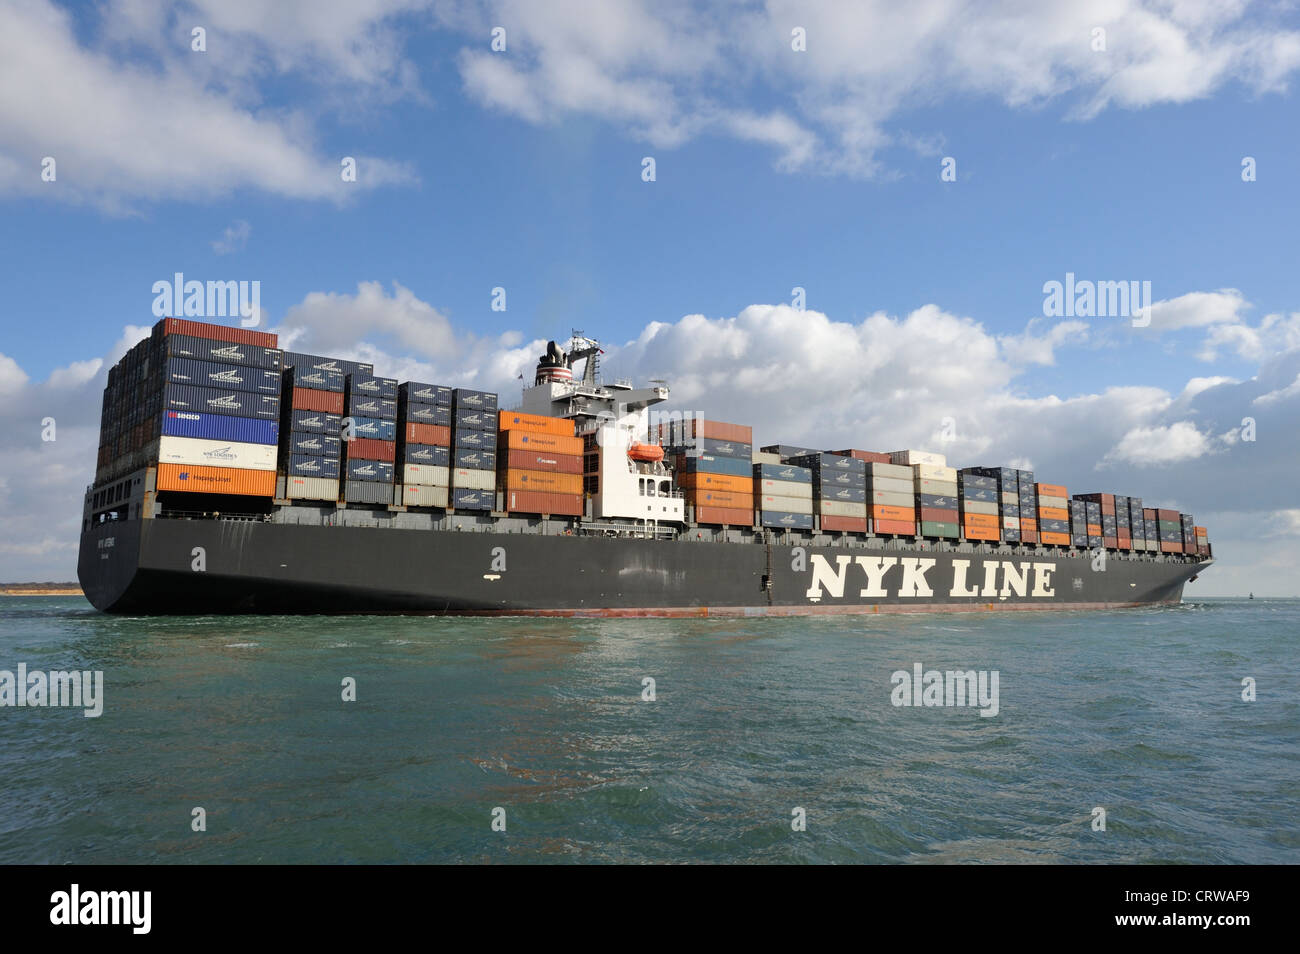 NYK Line Container ship on the Solent near Southampton UK Stock